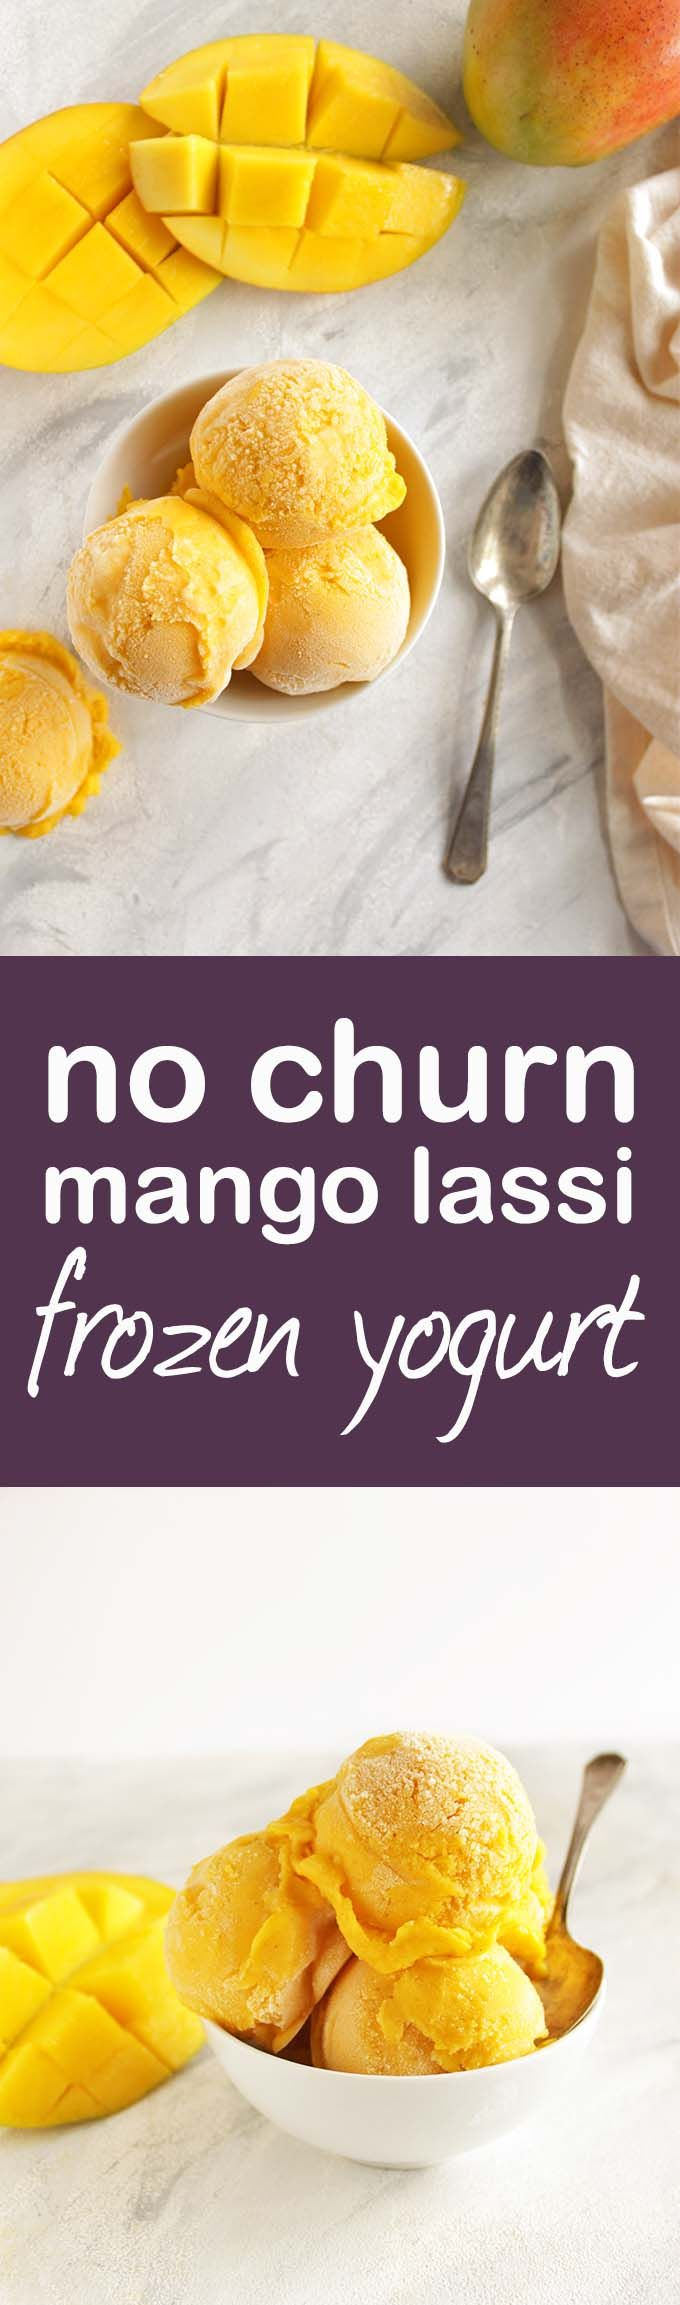 Creamy, sweet and slightly tangy with a hint of cardamom for that classic mango lassi taste. This frozen yogurt recipe is super easy to make, only 15 minutes of hands on time and no ice cream maker required! The perfect summertime treat. Gluten Free/Refined Sugar Free | robustrecipes.com